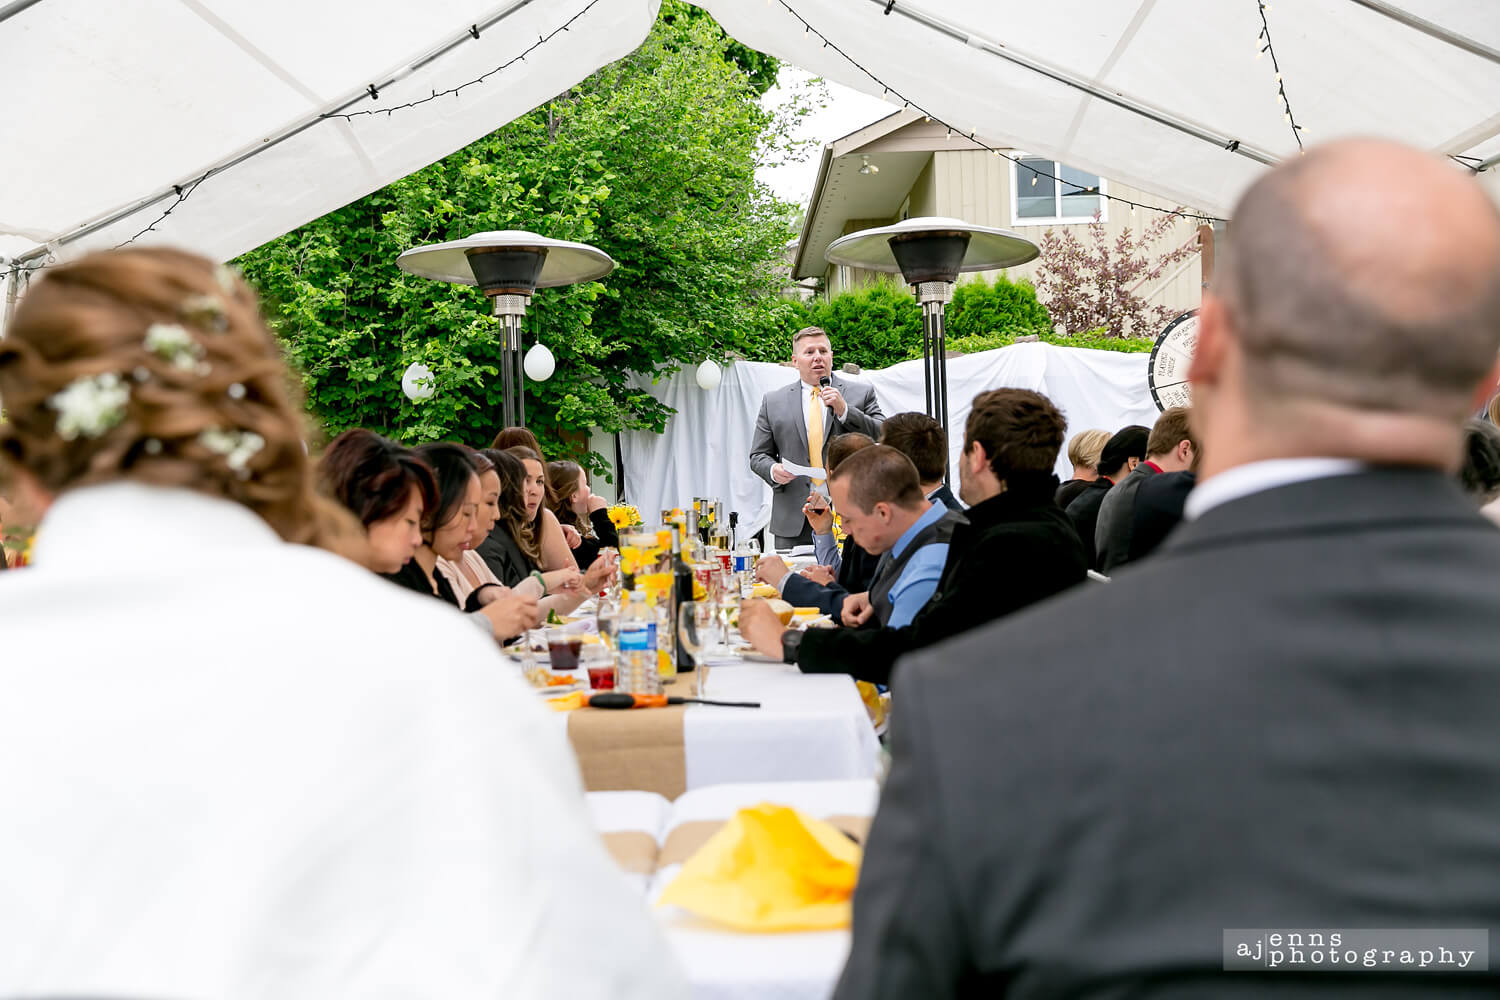 The best man roasting the groom during the speeches